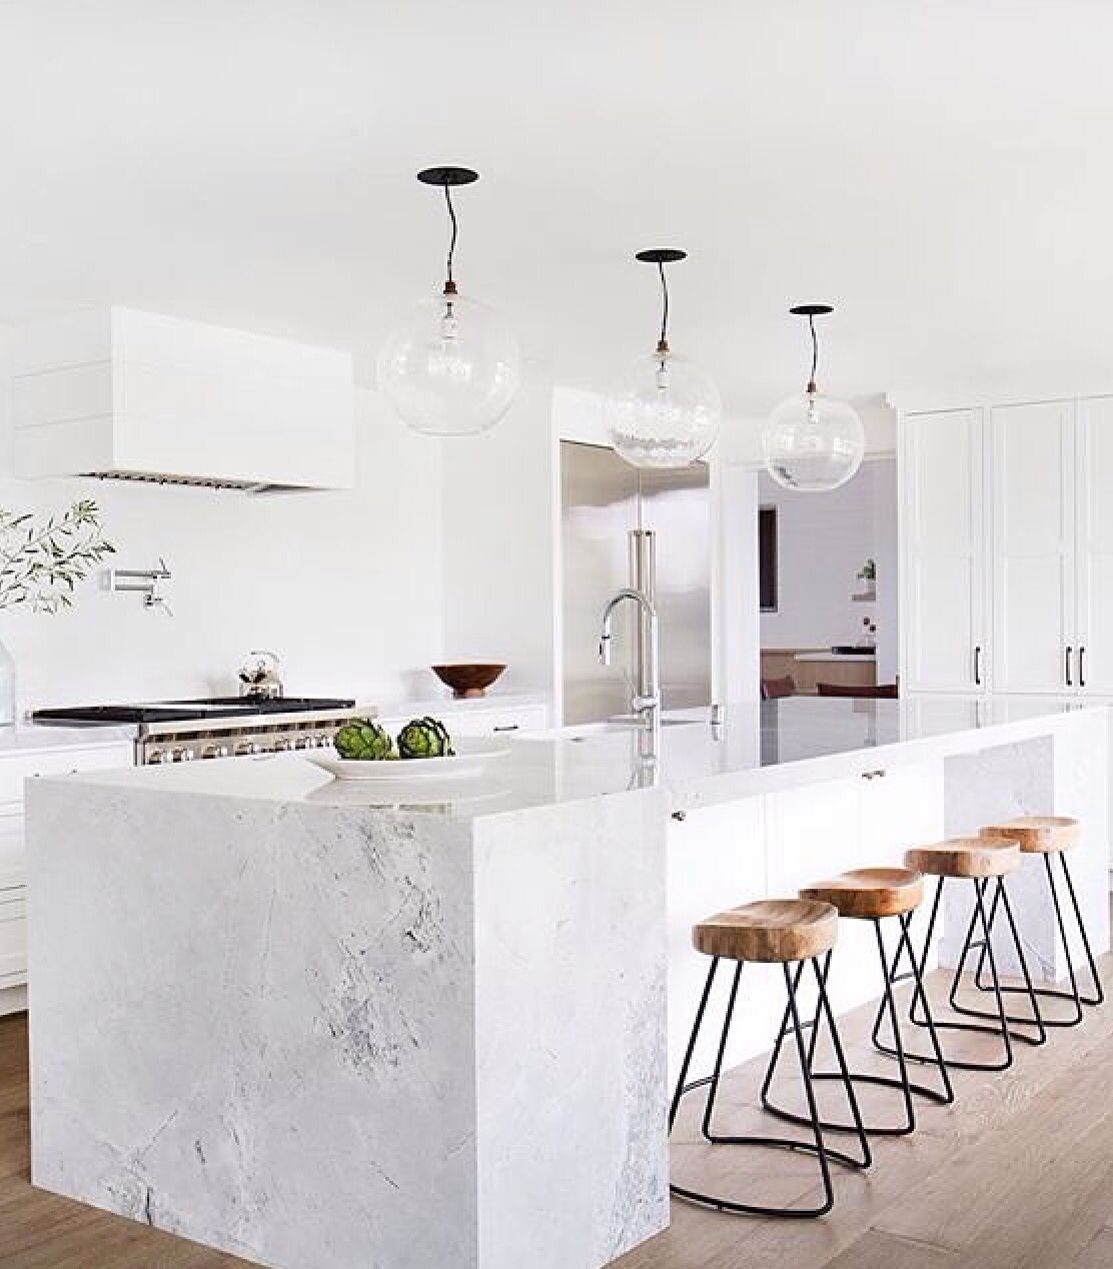 Bright White Modern Kitchen Https://emfurn.com/collections